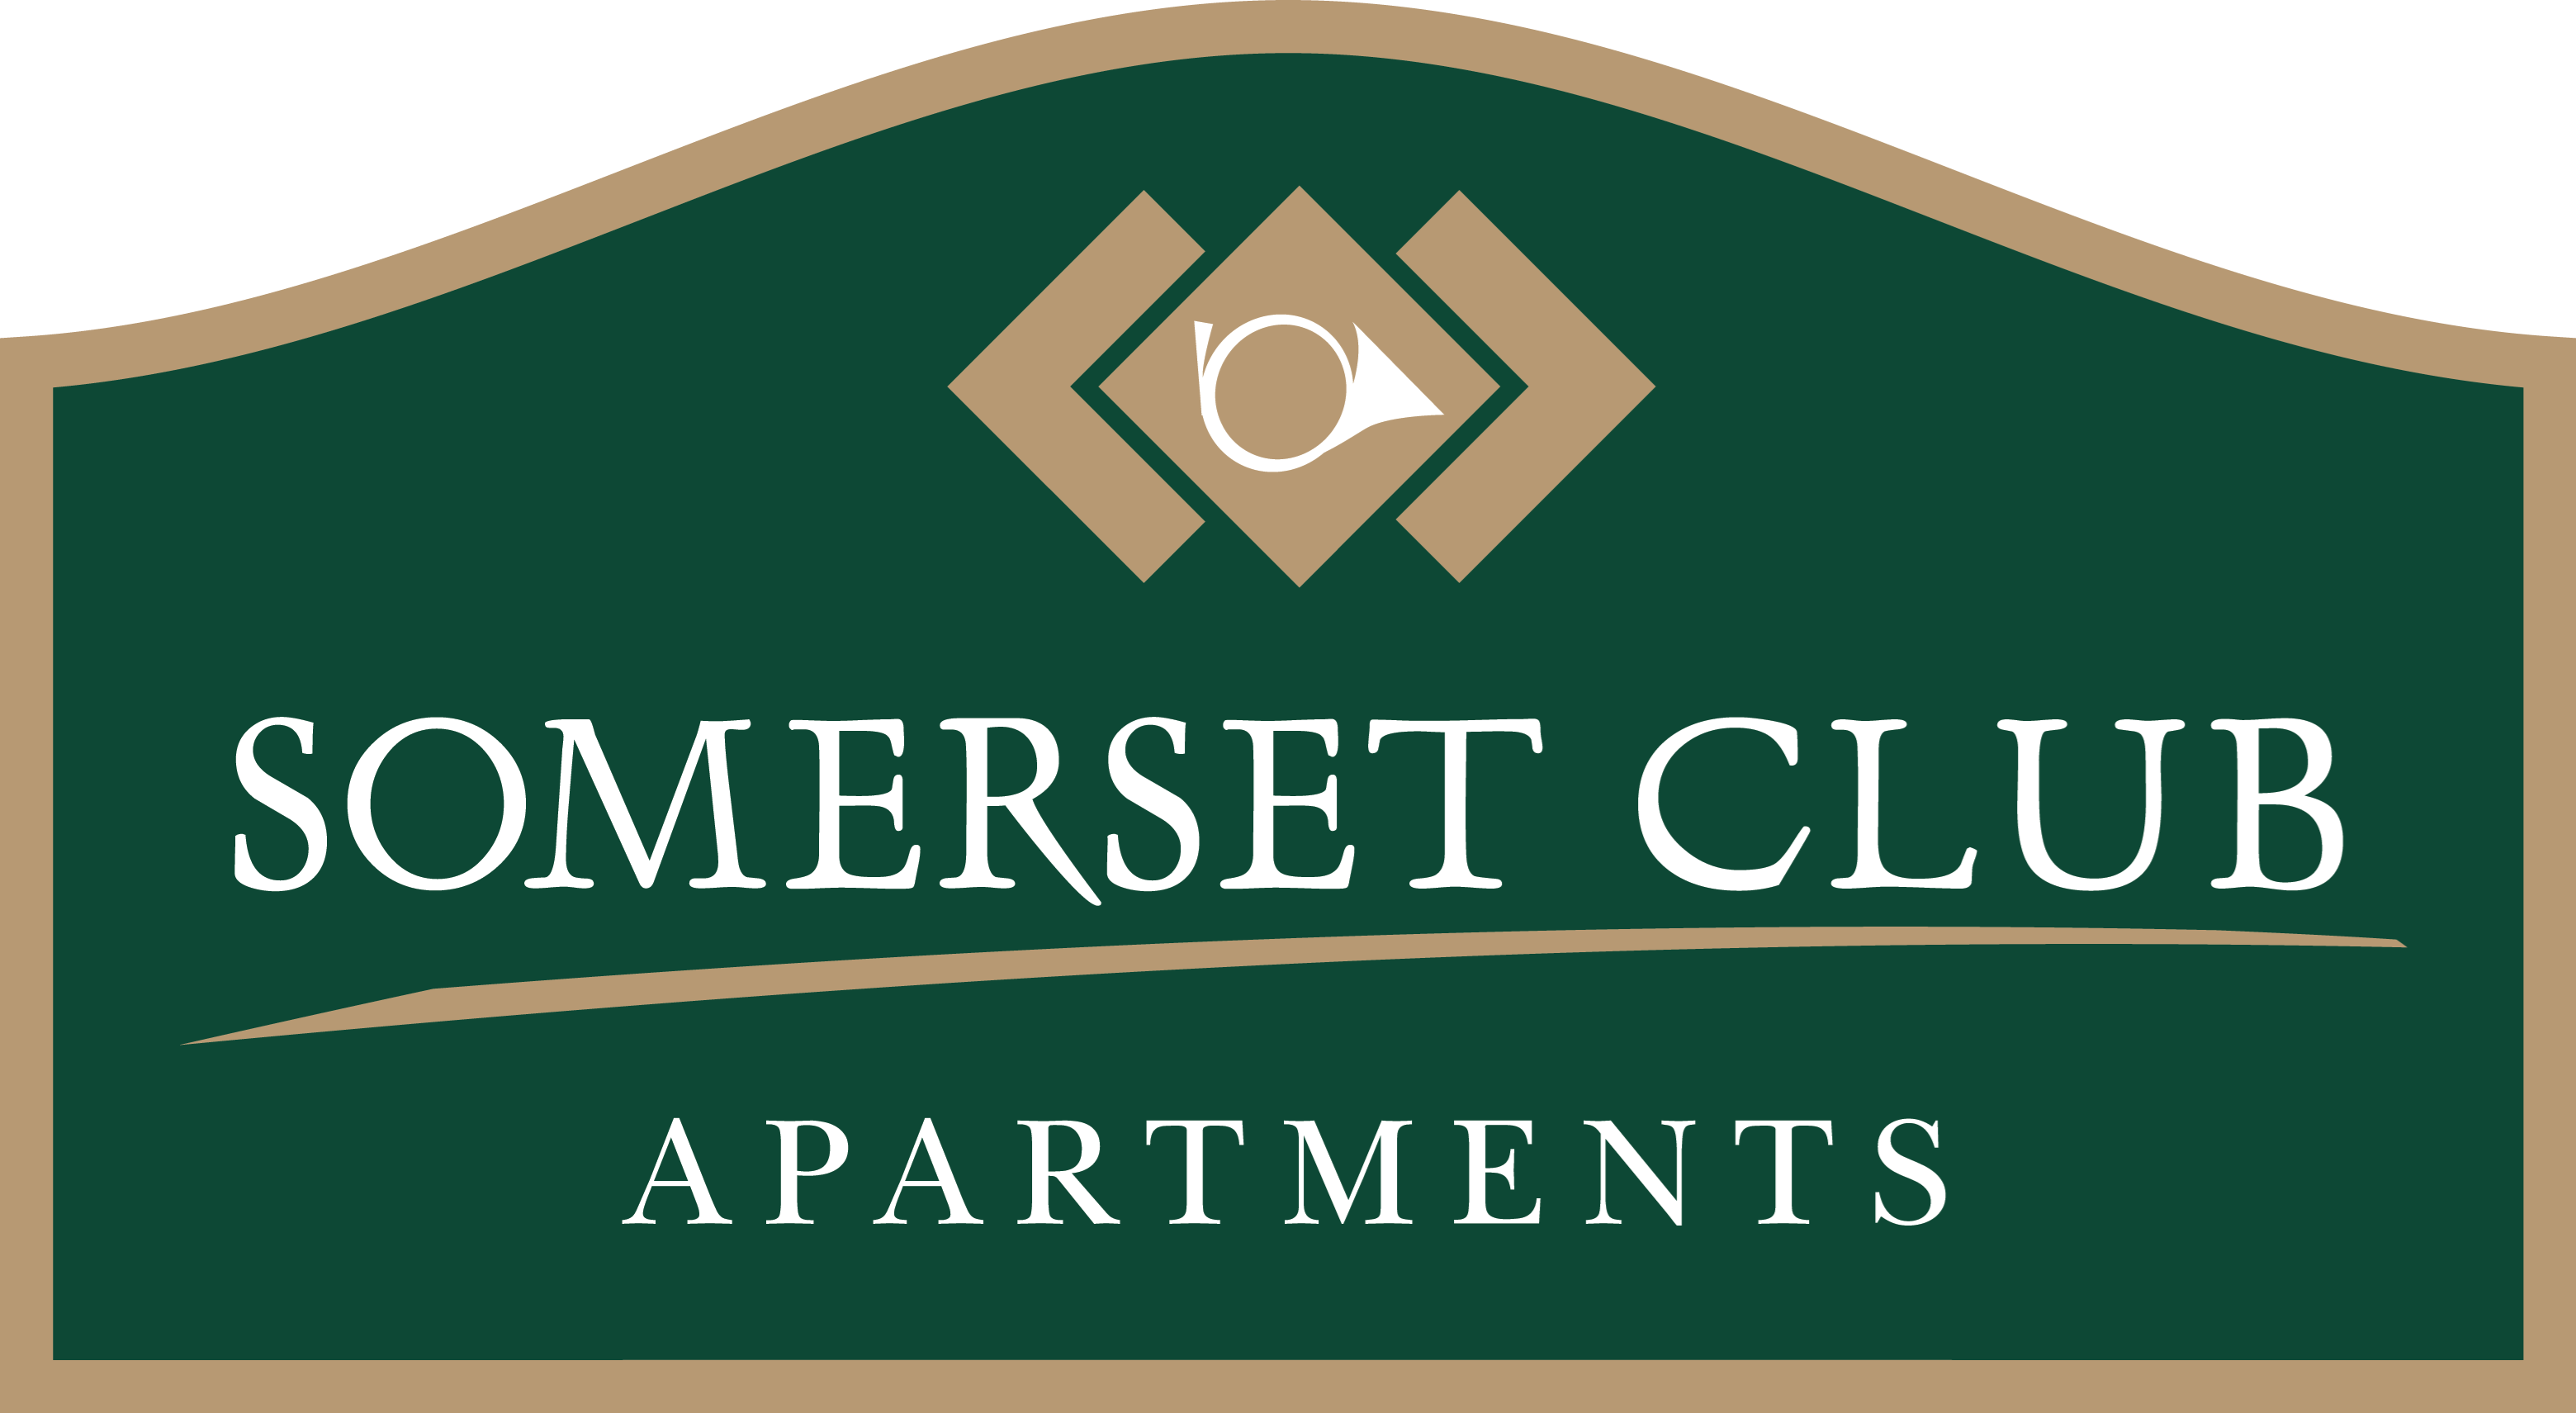 Somerset Club Apartments Property Logo 16